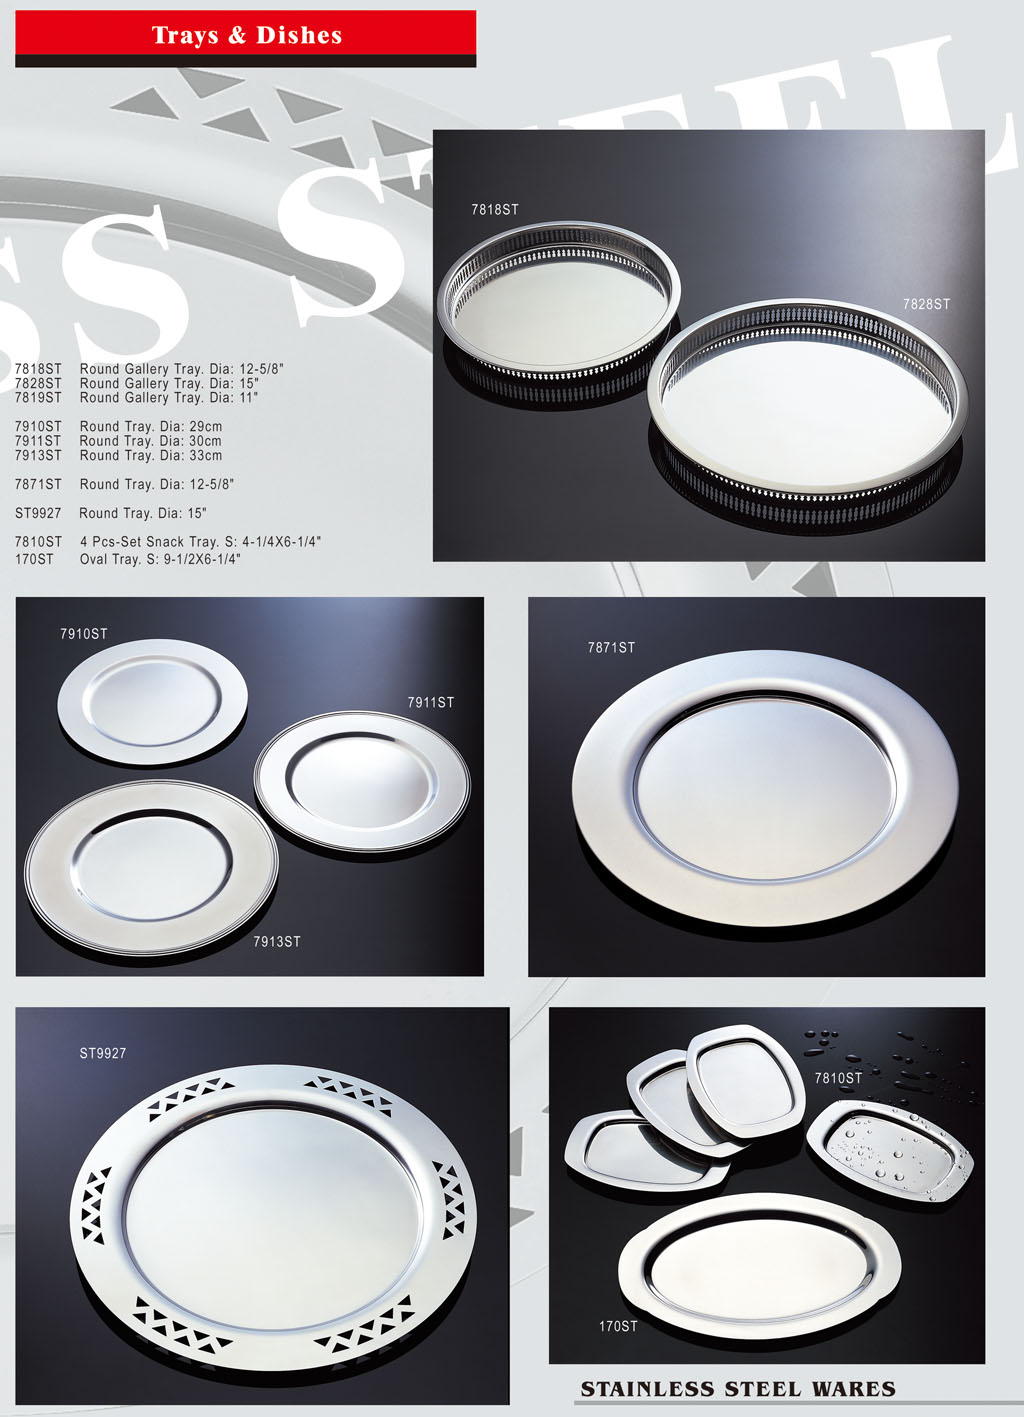 Stainless Steel Ware - Trays & Dishes